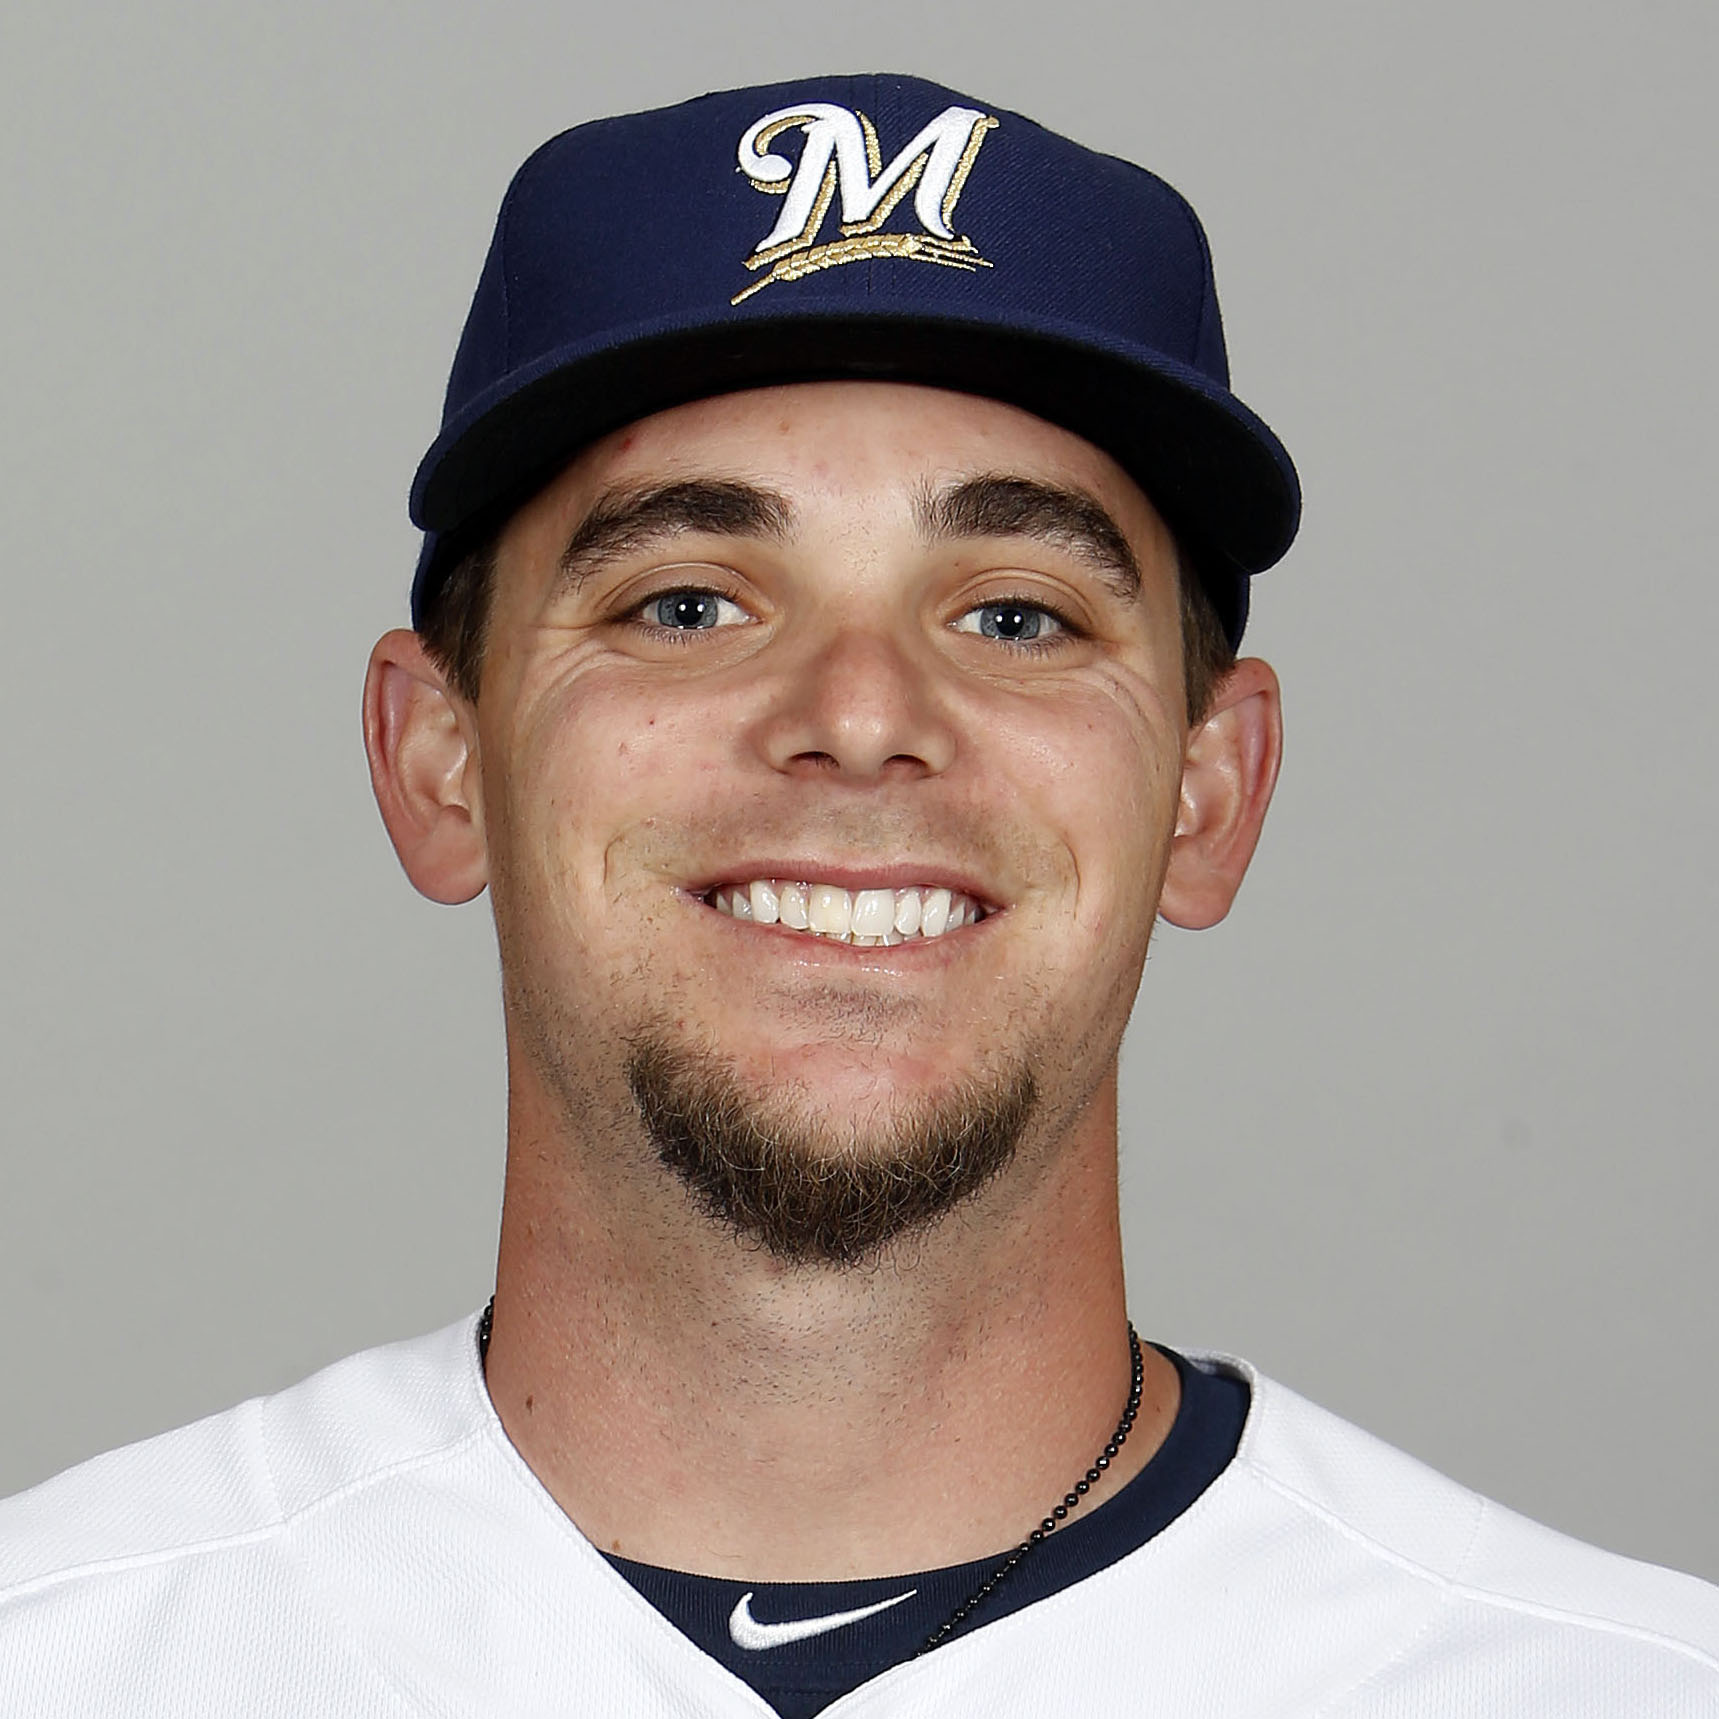 Scooter Gennett Headshot